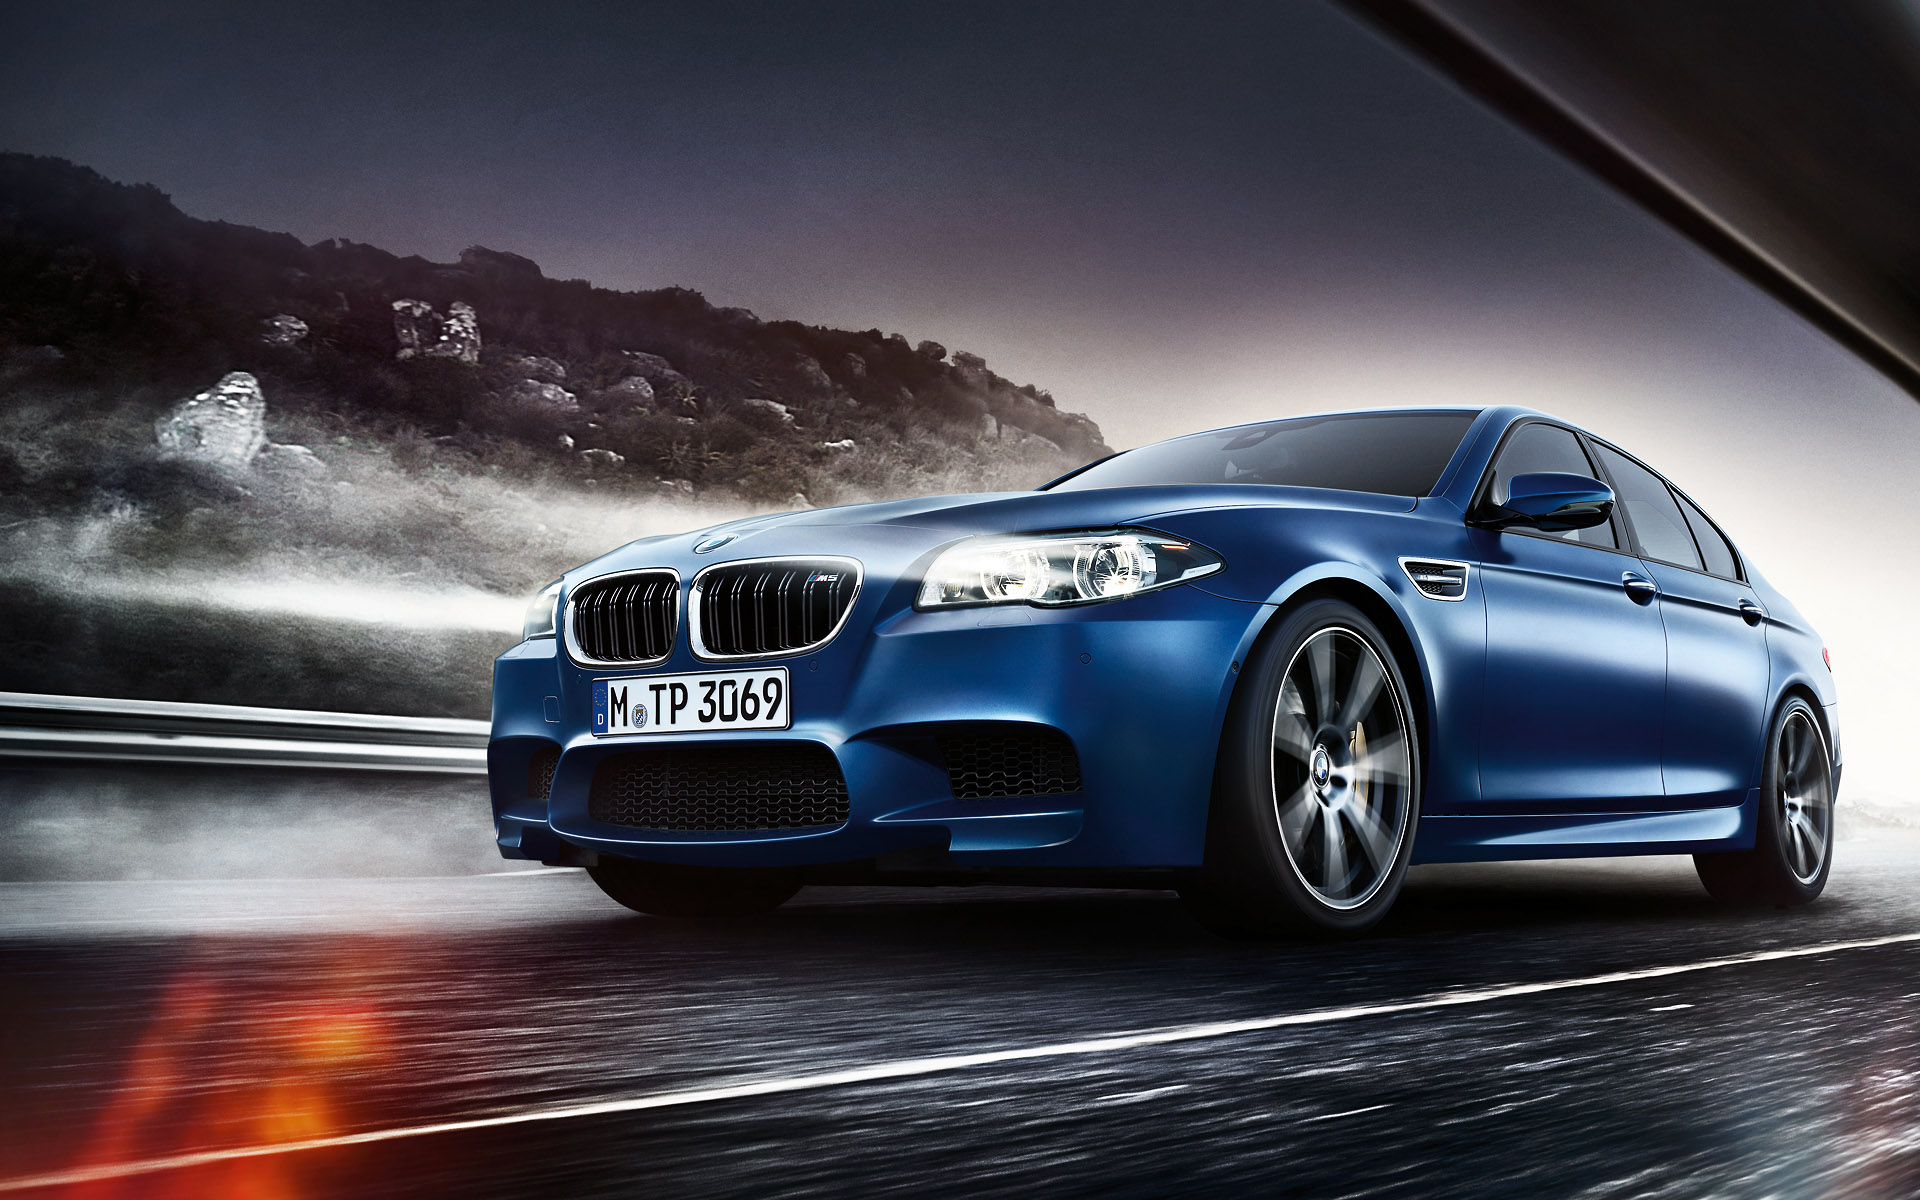 BMW M5 Sedan Wallpaper 1920x1200 01